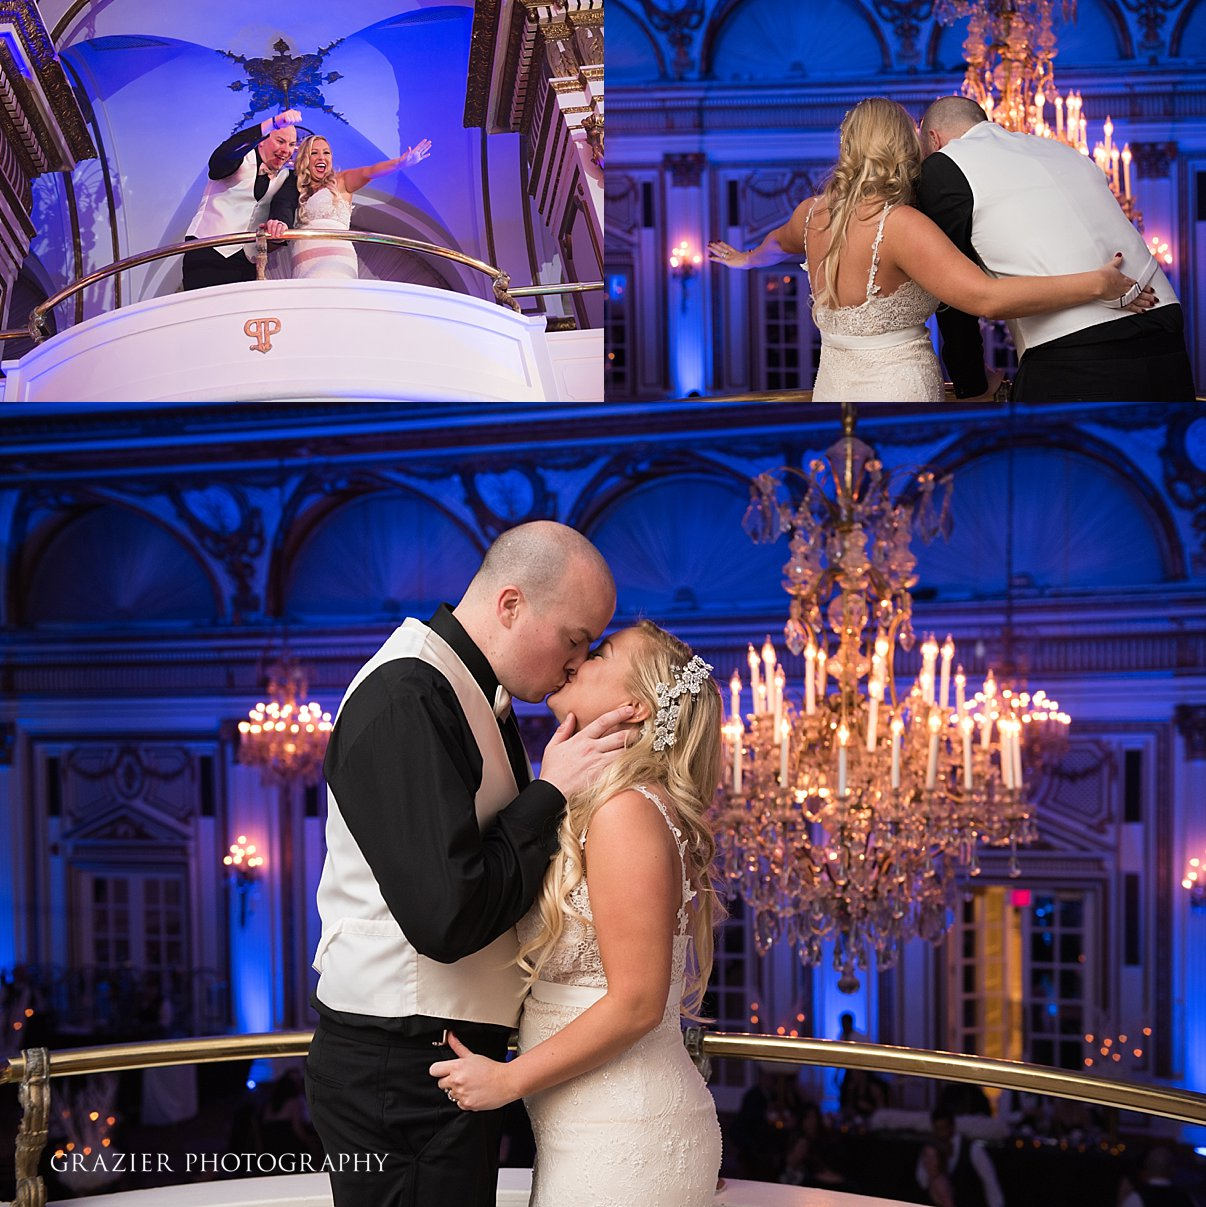 Grazier_Photography_Fairmont_Copley_Boston_Wedding_2016_063.JPG